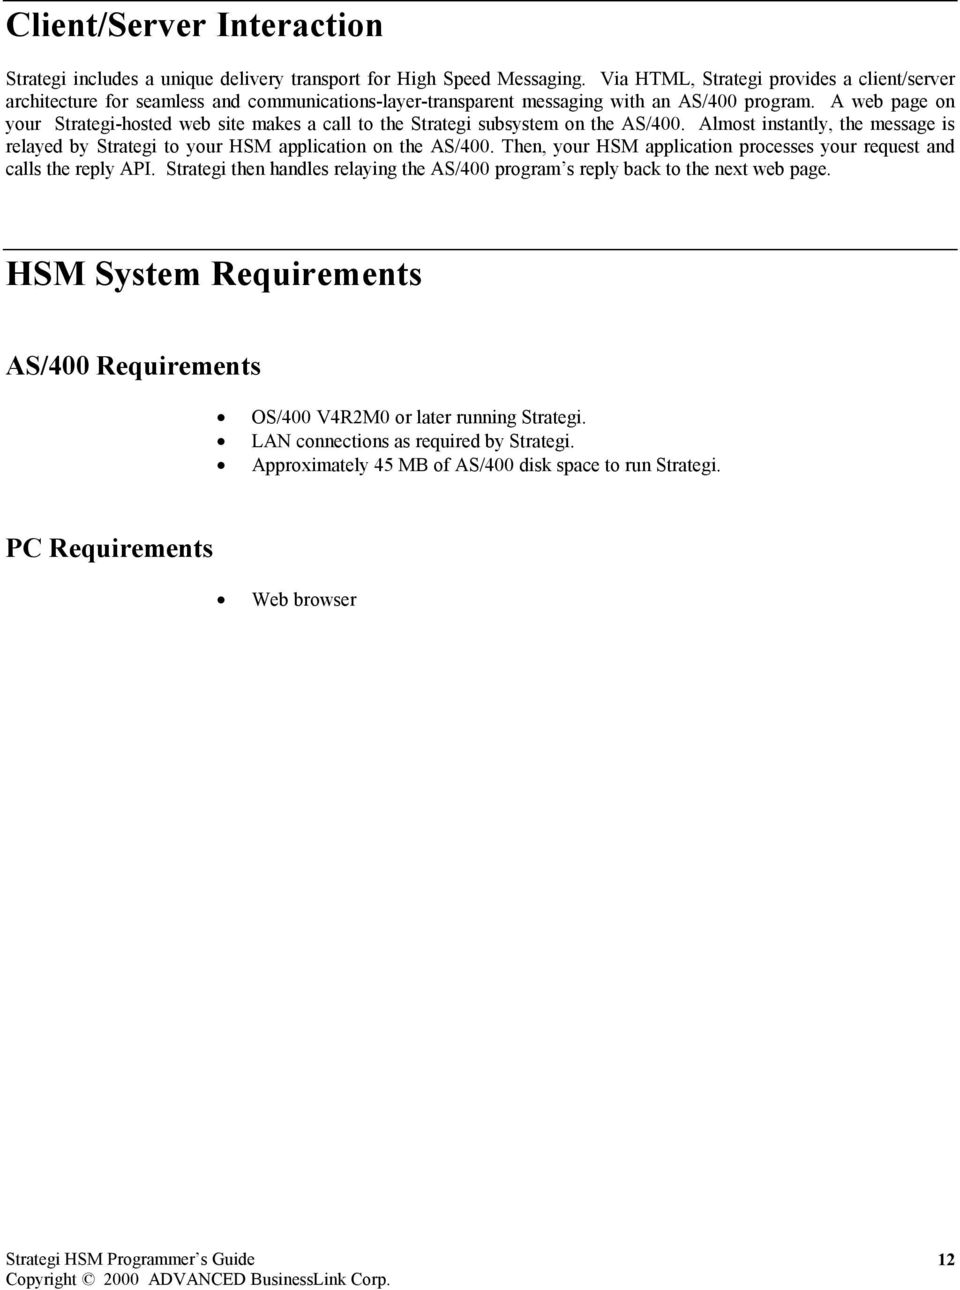 A web page on your Strategi-hosted web site makes a call to the Strategi subsystem on the AS/400. Almost instantly, the message is relayed by Strategi to your HSM application on the AS/400.